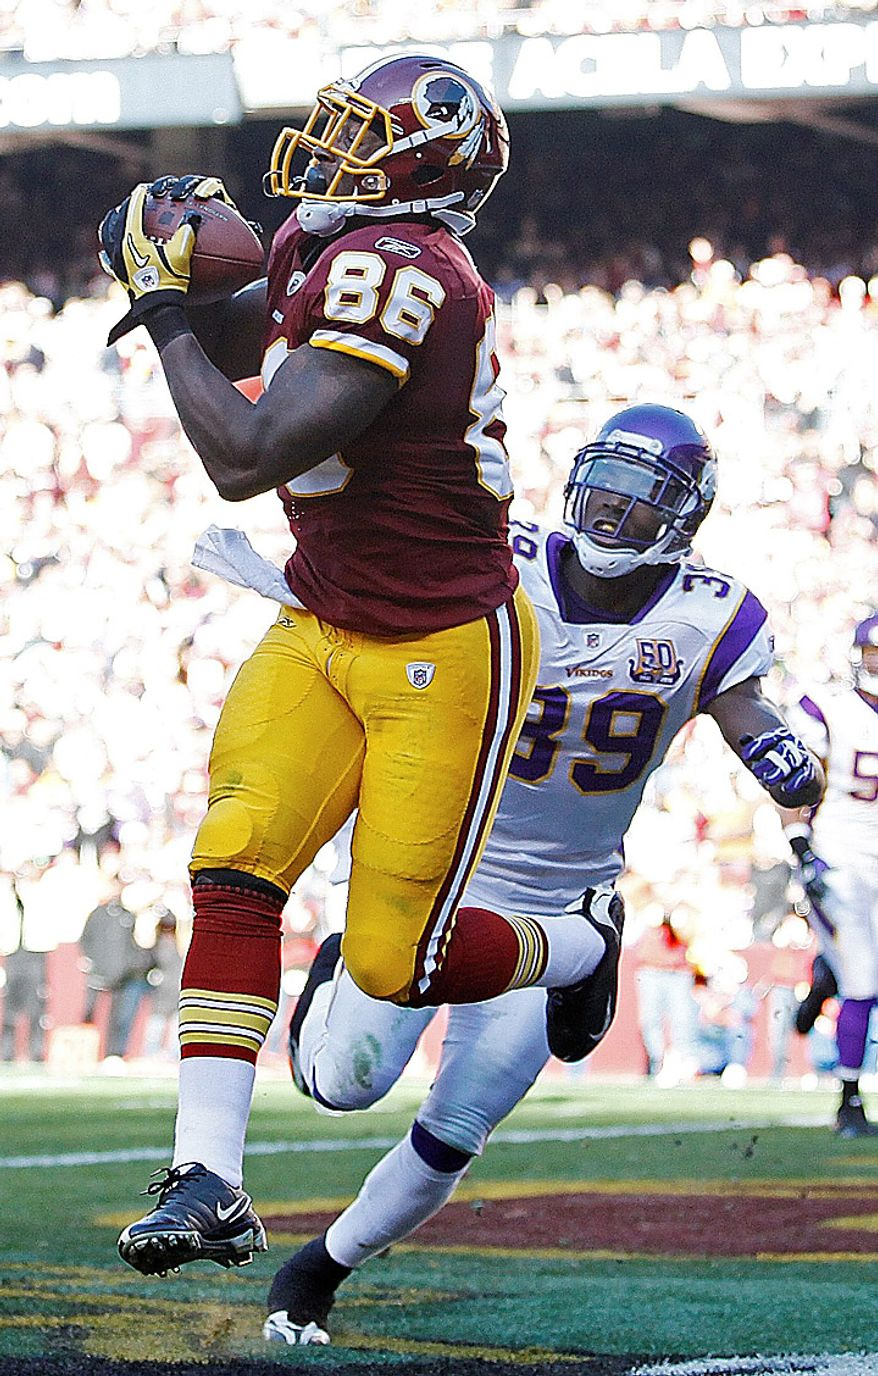 Washington Redskins tight end Fred Davis (86) pulls in a touchdown-pass under pressure from Minnesota Vikings safety Husain Abdullah during the first half of an NFL football game in Landover, Md., Sunday, Nov. 28, 2010. (AP Photo/Evan Vucci)